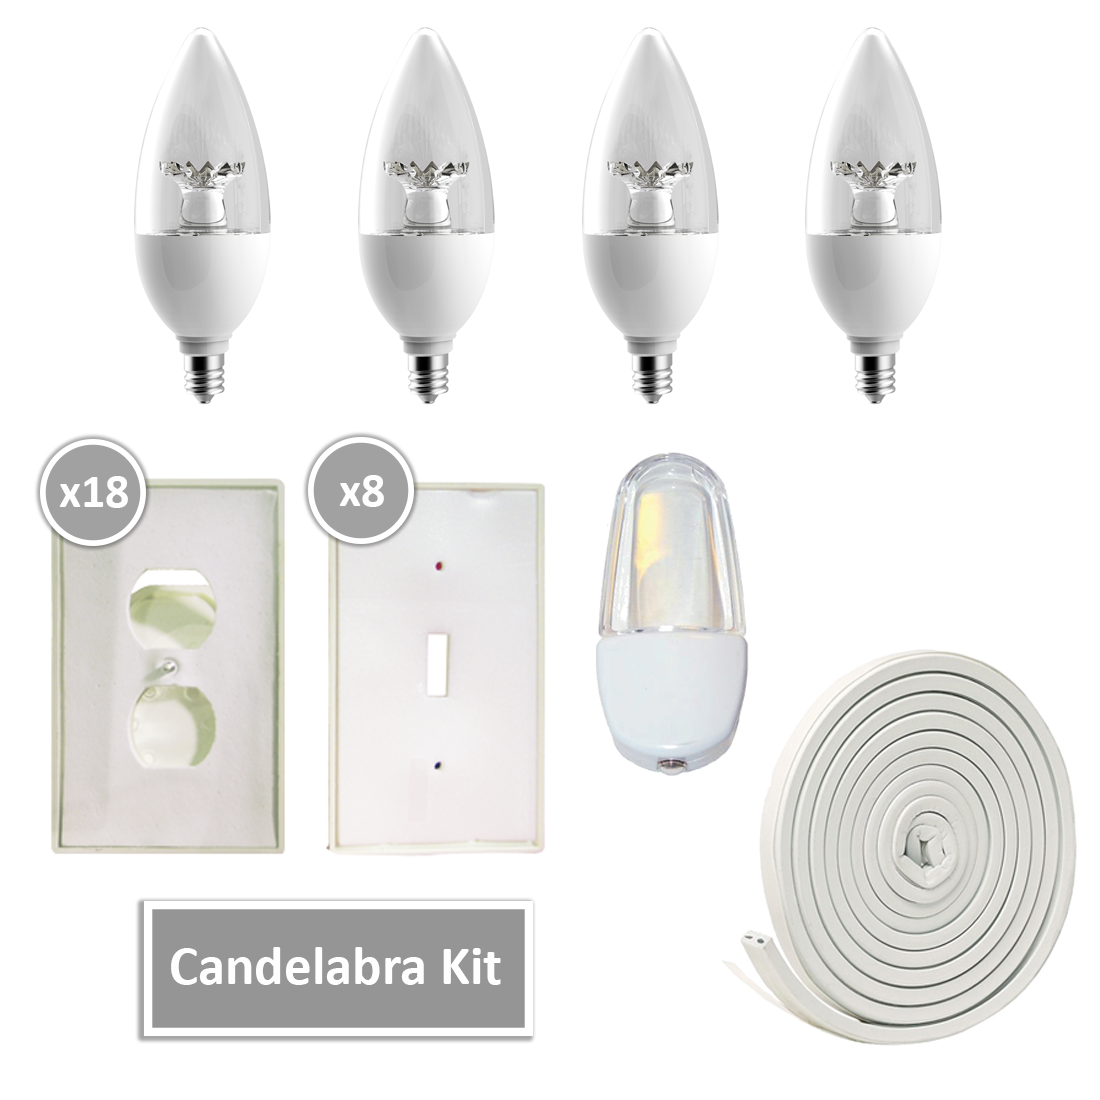 Candelabra LED Kit